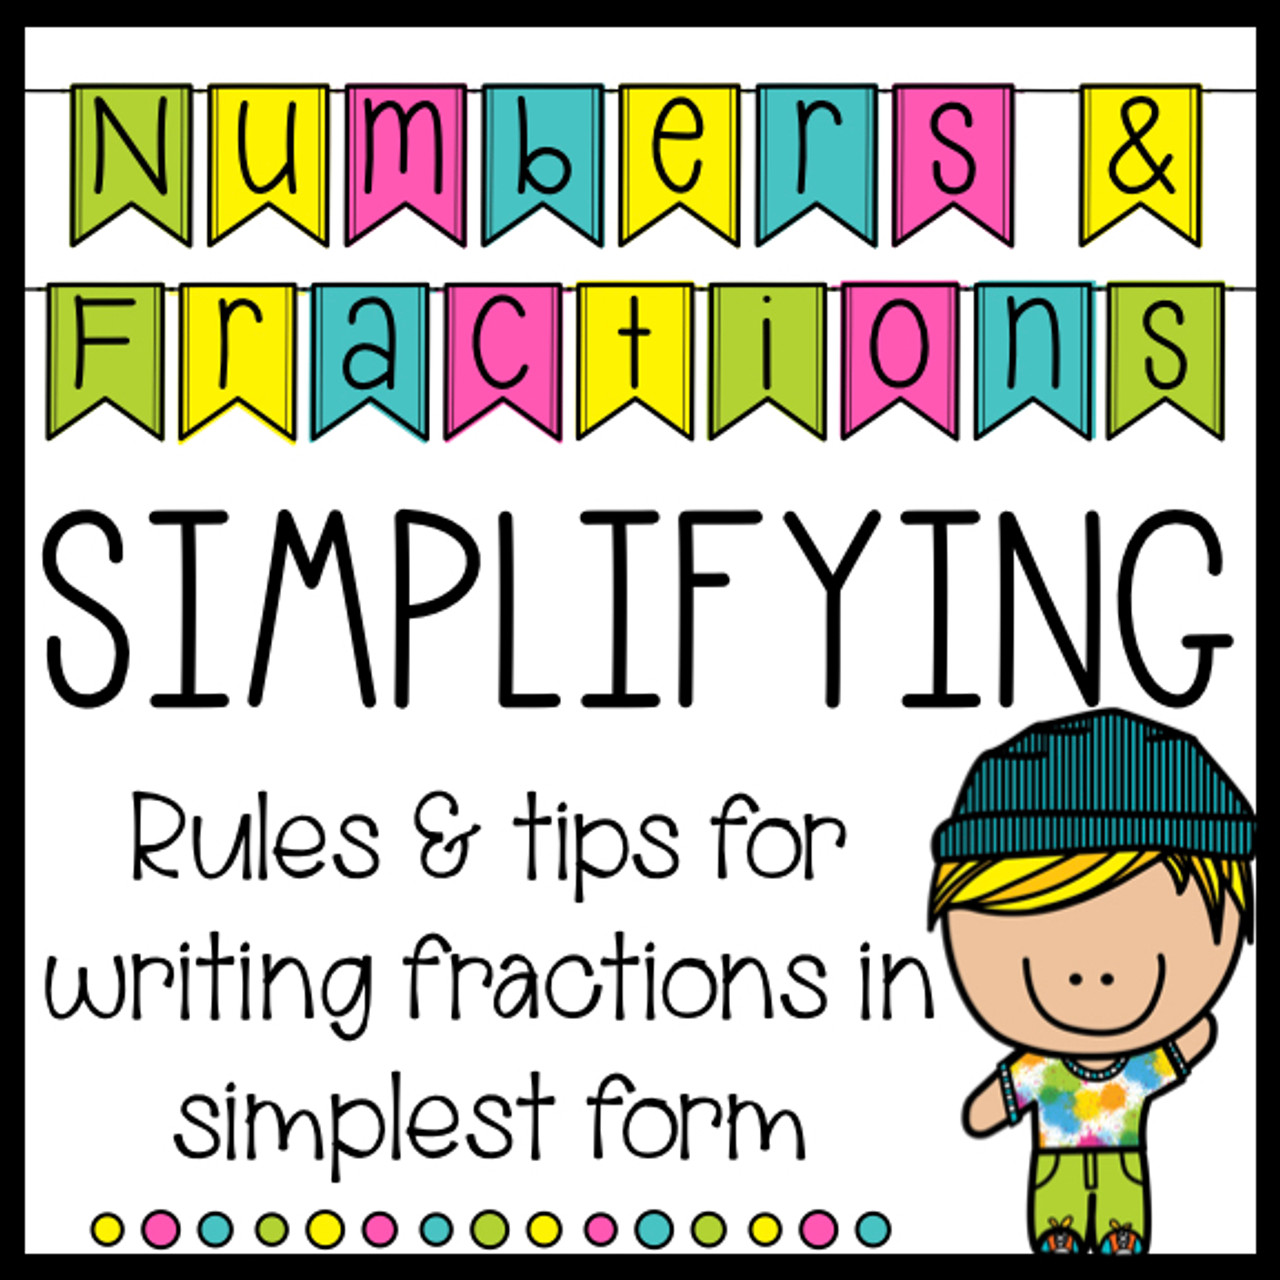 Simplify Fractions Division Rules, Tips, Tricks, and Practice Problems